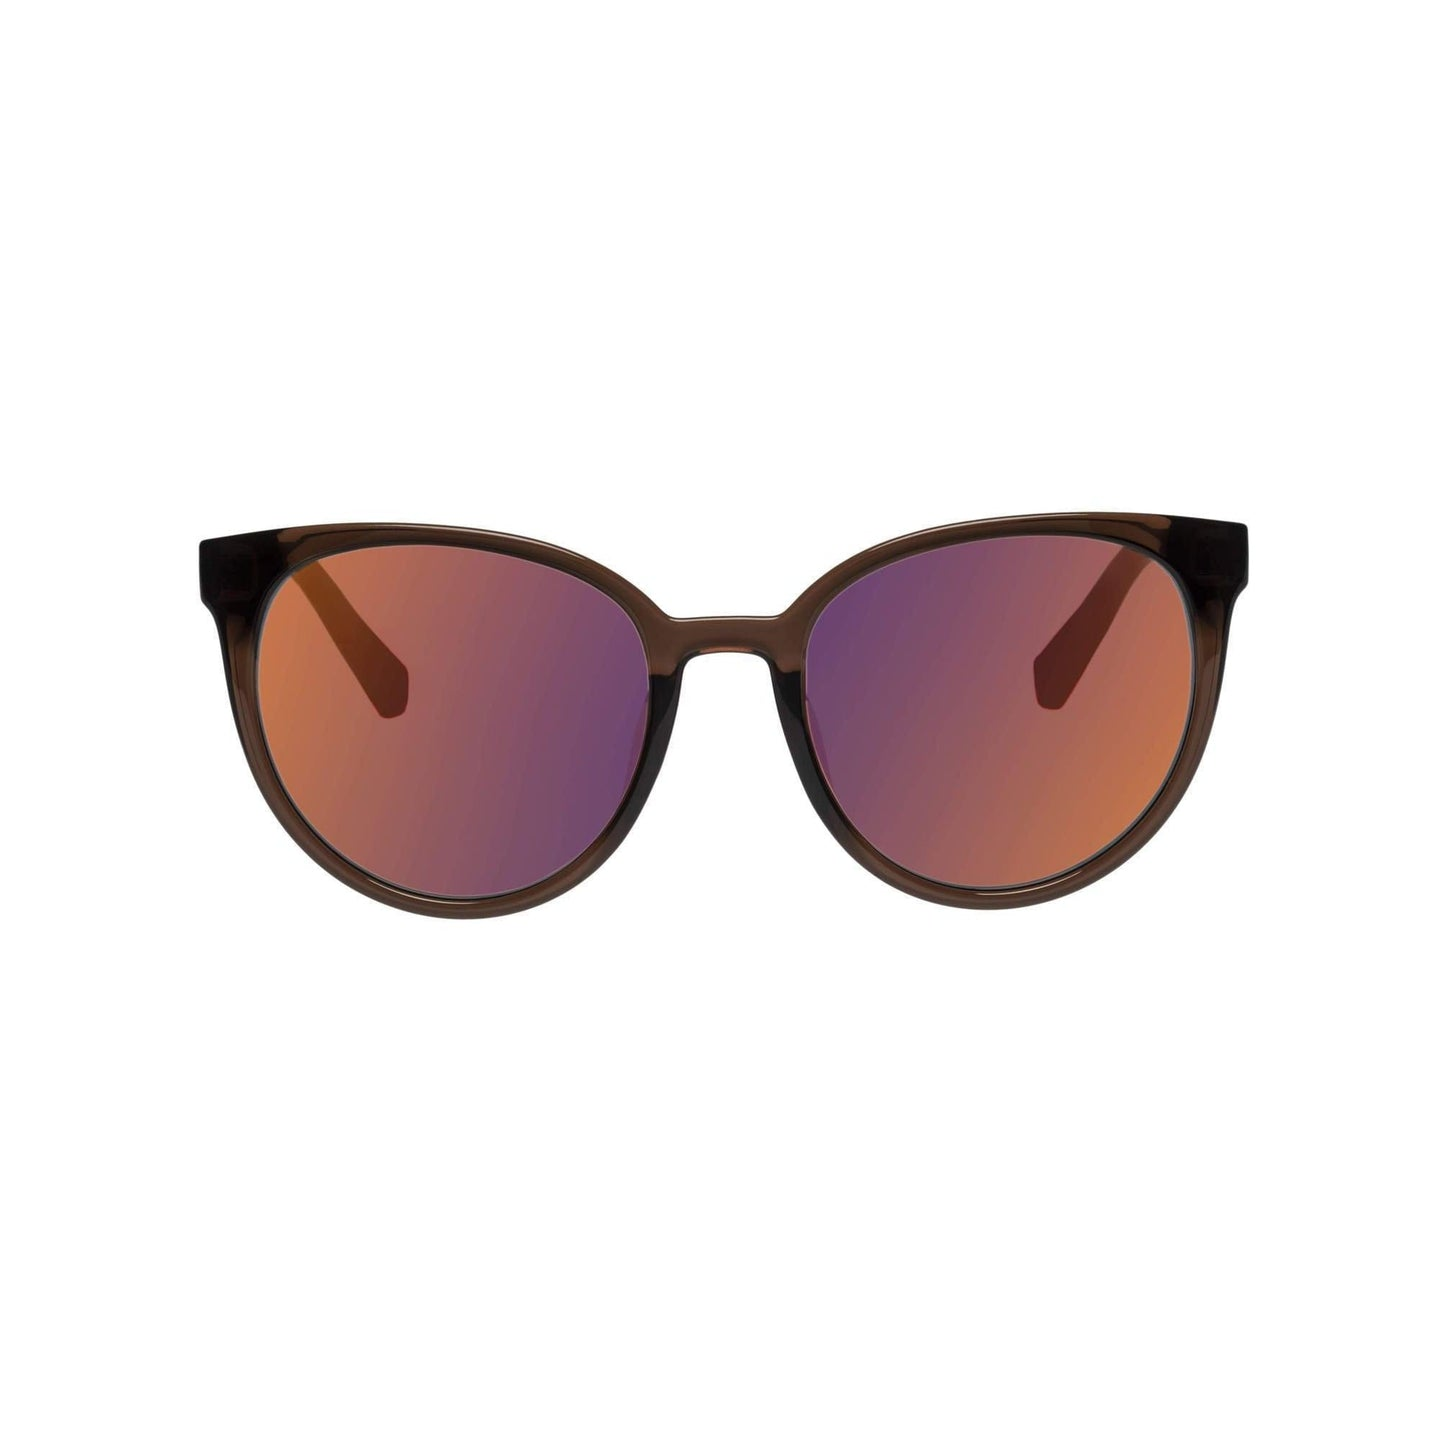 Armada Sunglasses / Neighborhood Goods